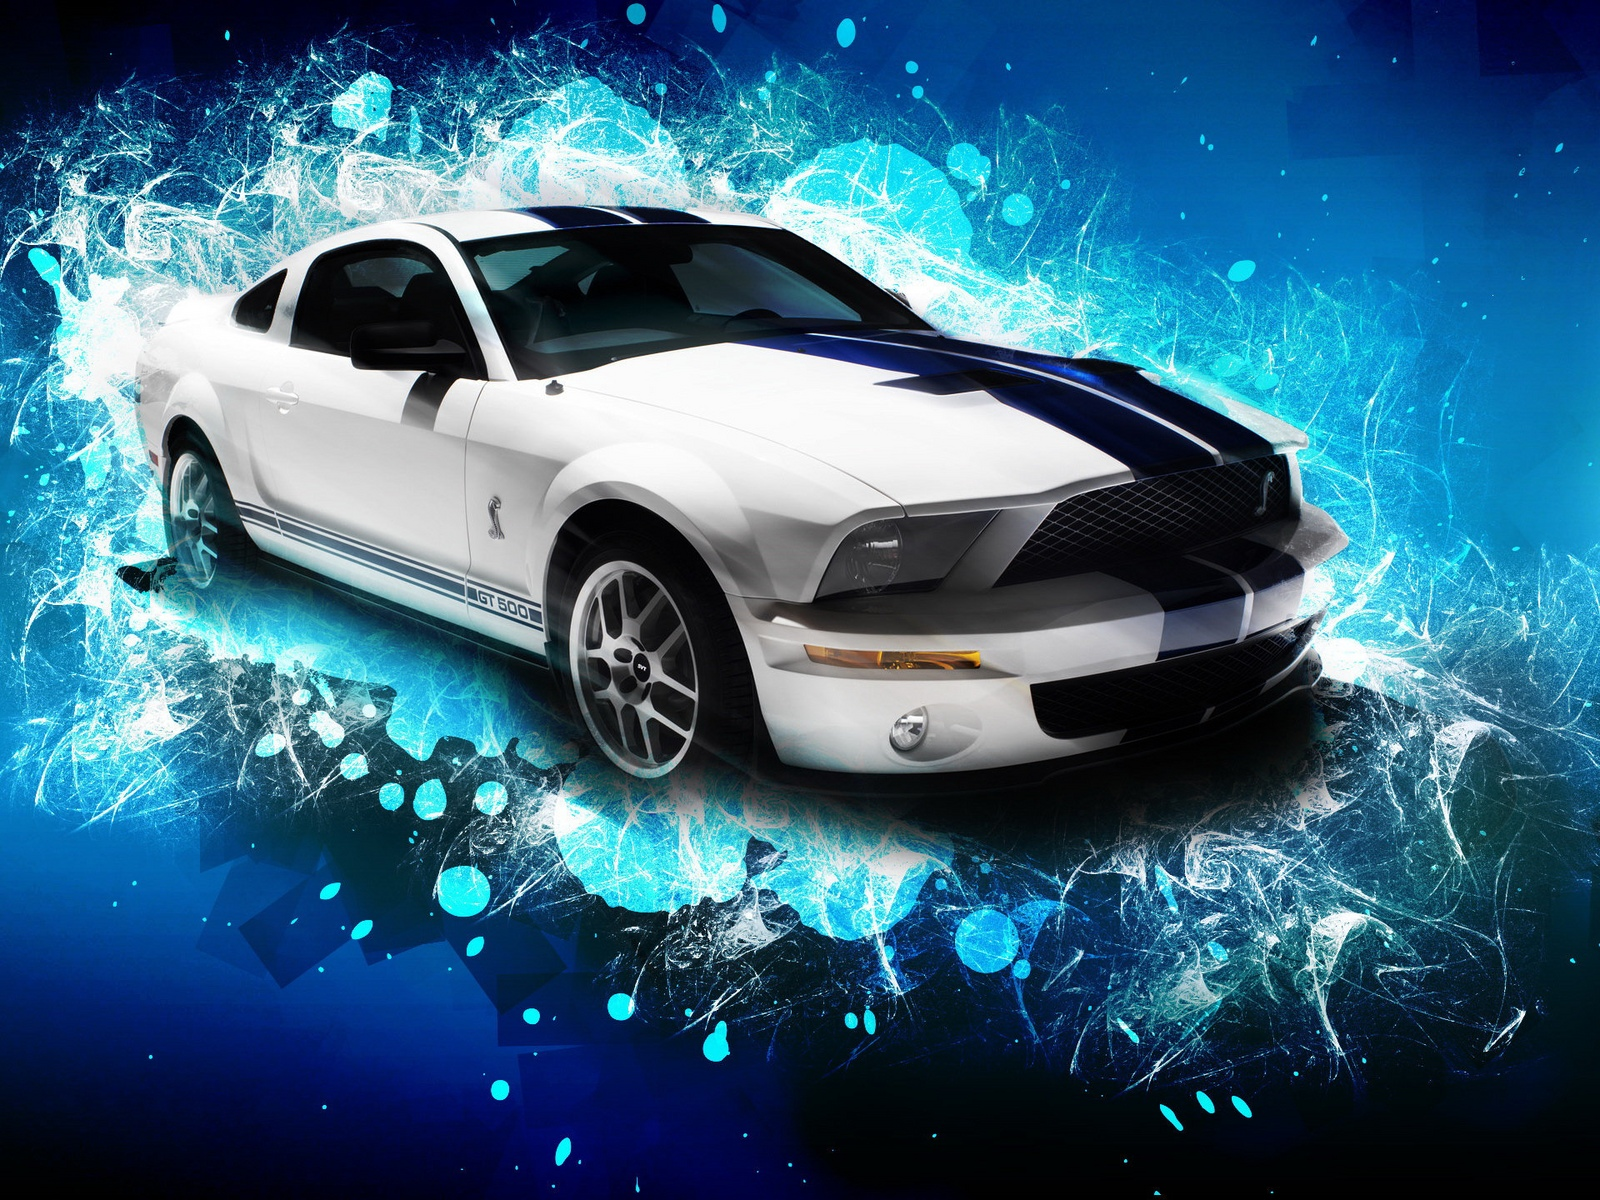 car%2Bwallpapers%2Bhd%2B5 Wallpapers Of Cars Hd